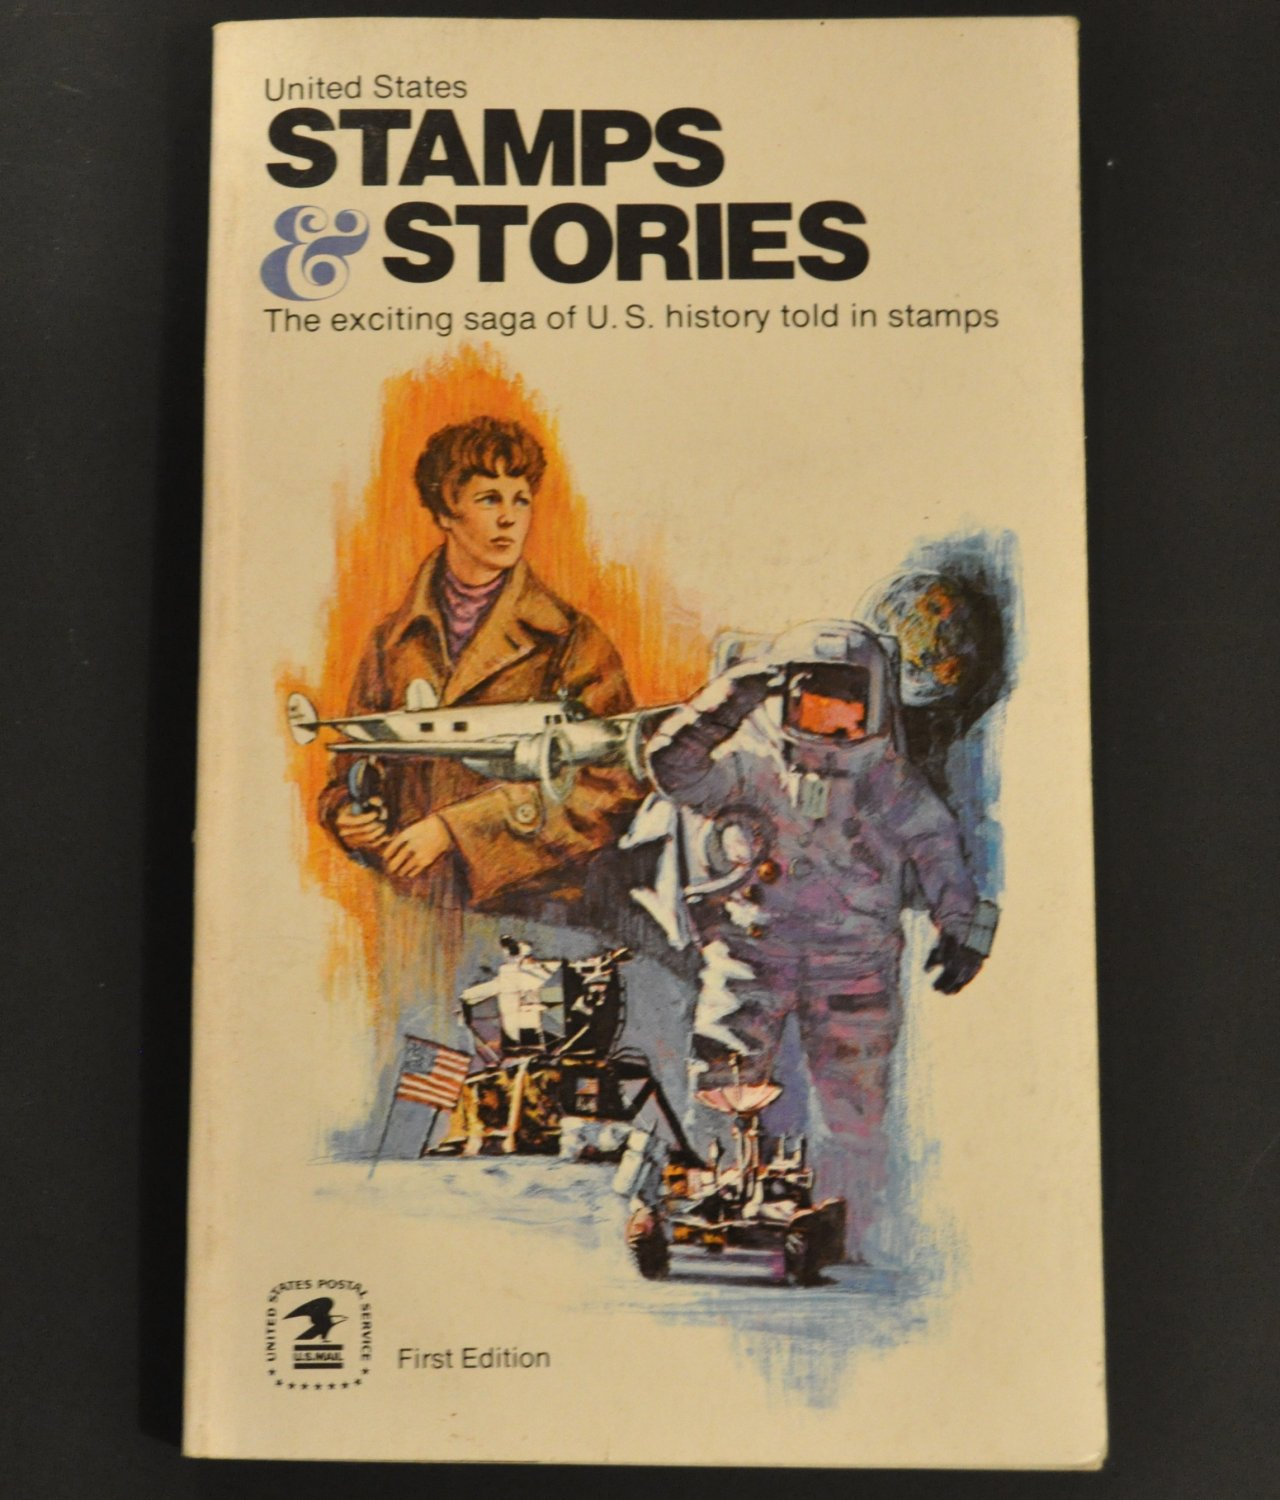 vintage 1972 United States Stamps & Stories